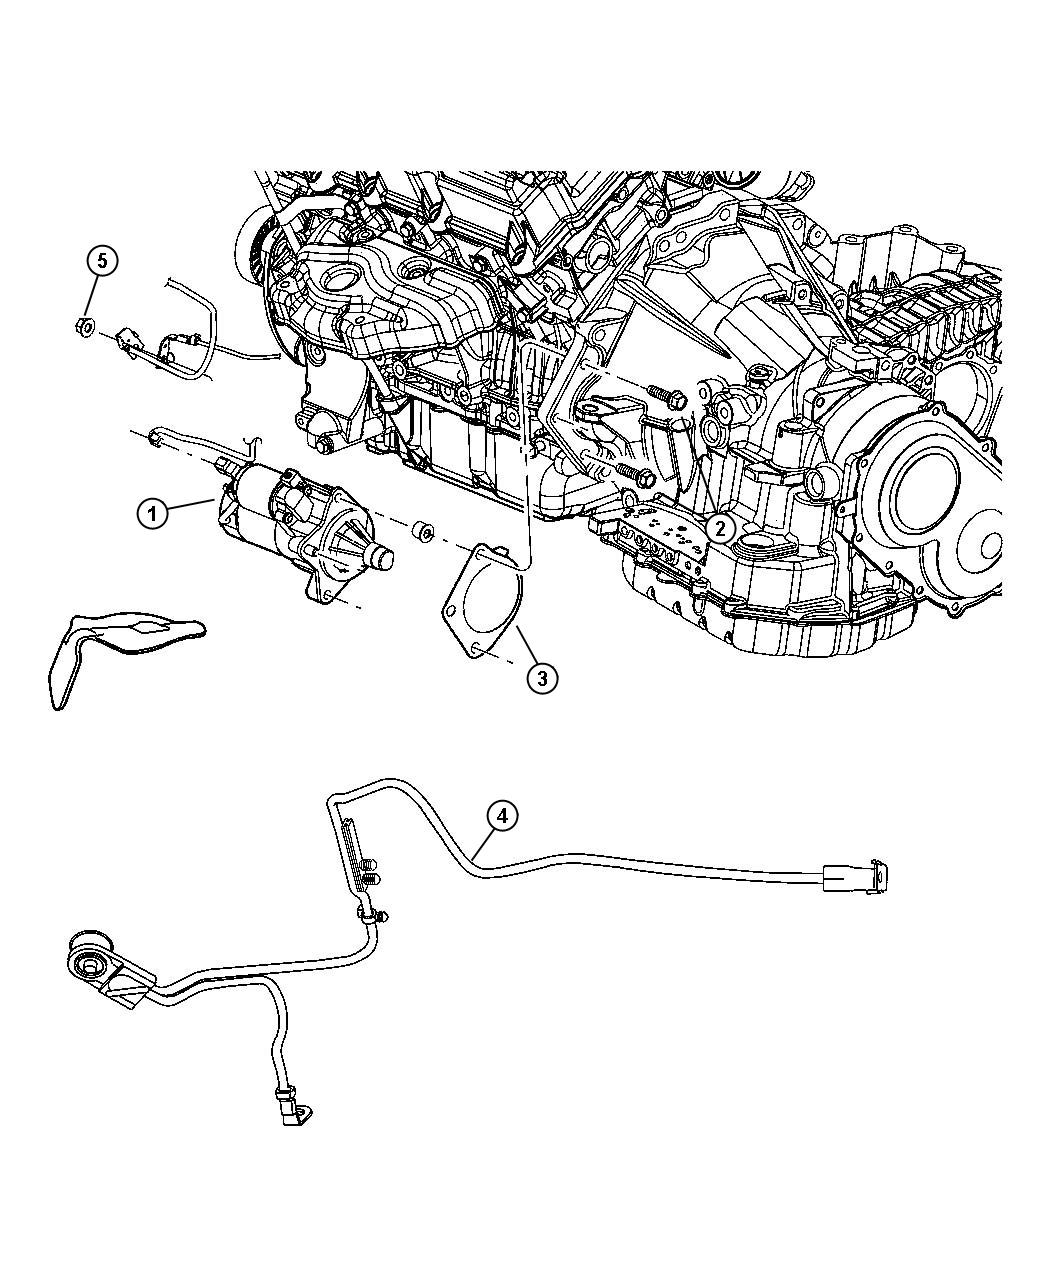 [ZSVE_7041]  DIAGRAM] 2004 Grand Caravan Engine Diagram FULL Version HD Quality Engine  Diagram - VENNDIAGRAMONLINE.NUITDEBOUTAIX.FR | 2004 Grand Caravan Engine Diagram |  | venndiagramonline.nuitdeboutaix.fr